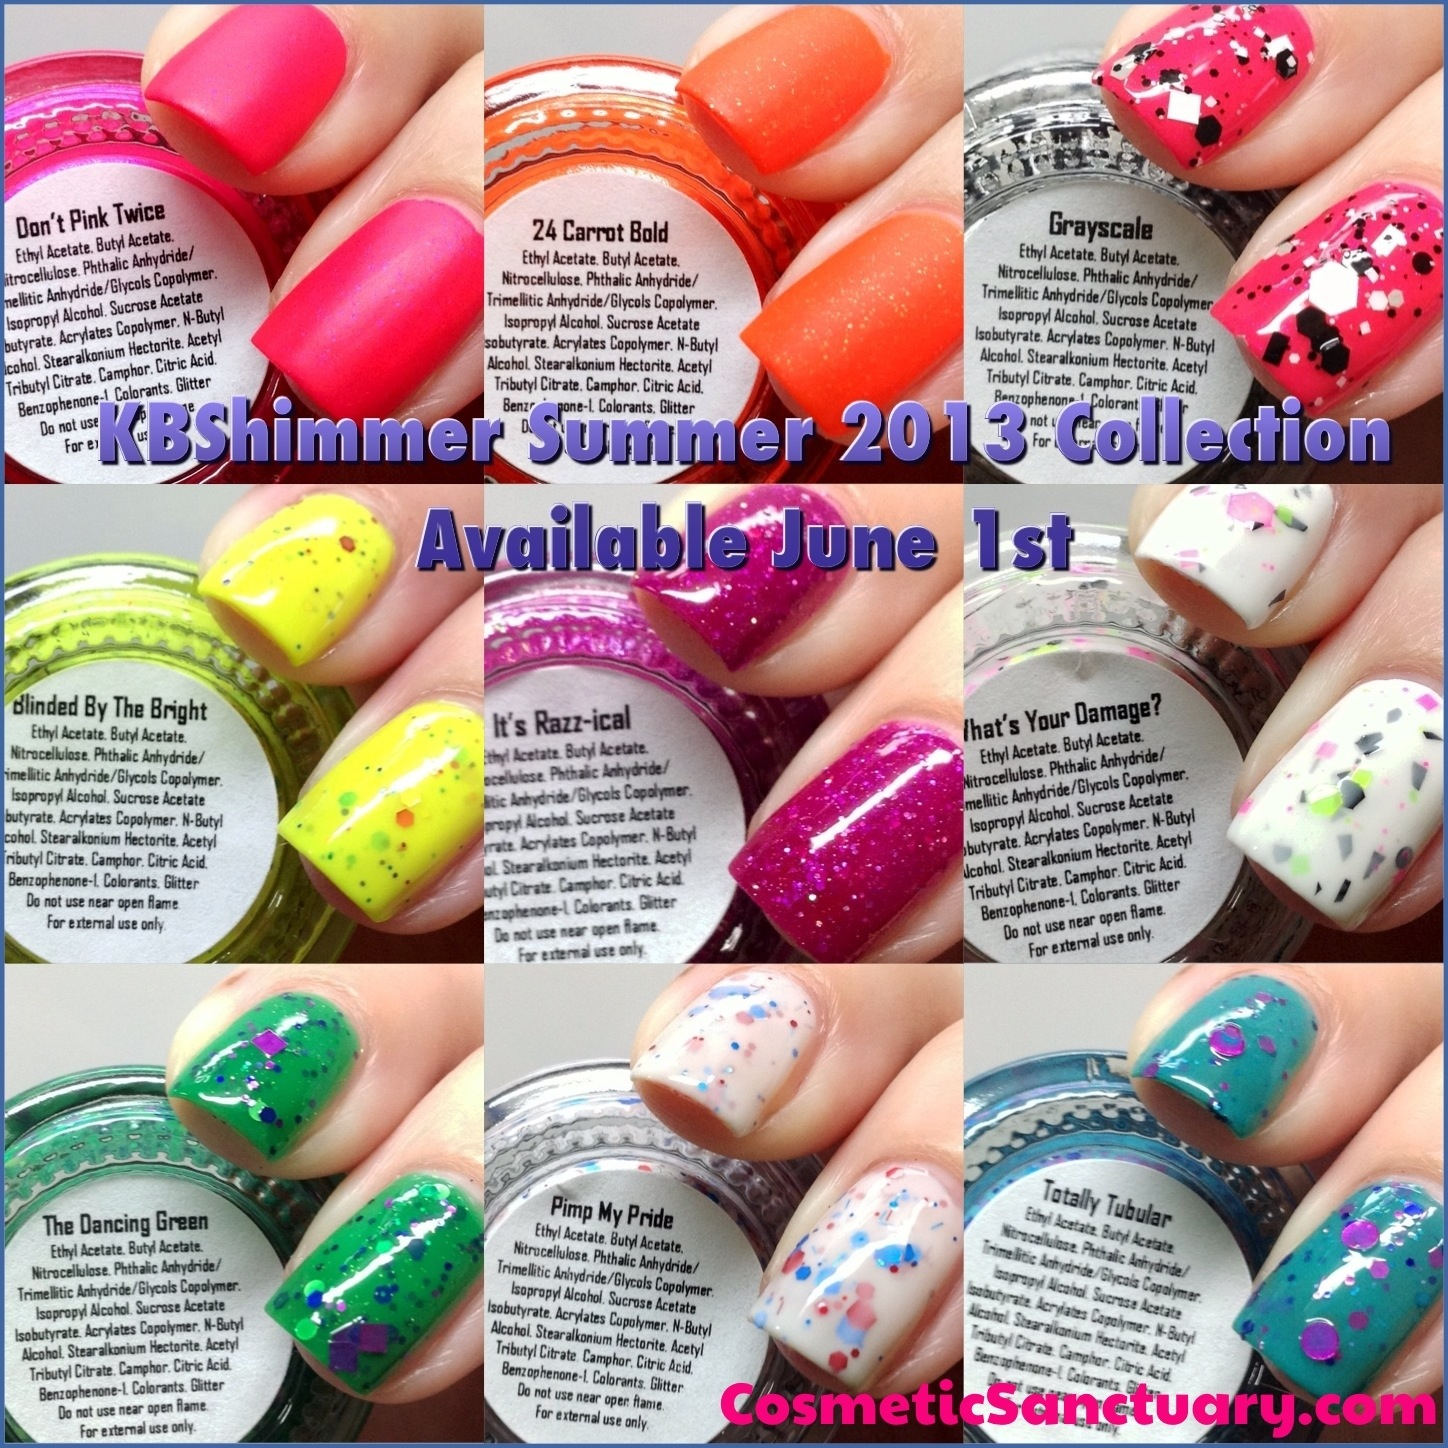 Nail Polish Archives - Page 60 of 130 - Cosmetic Sanctuary